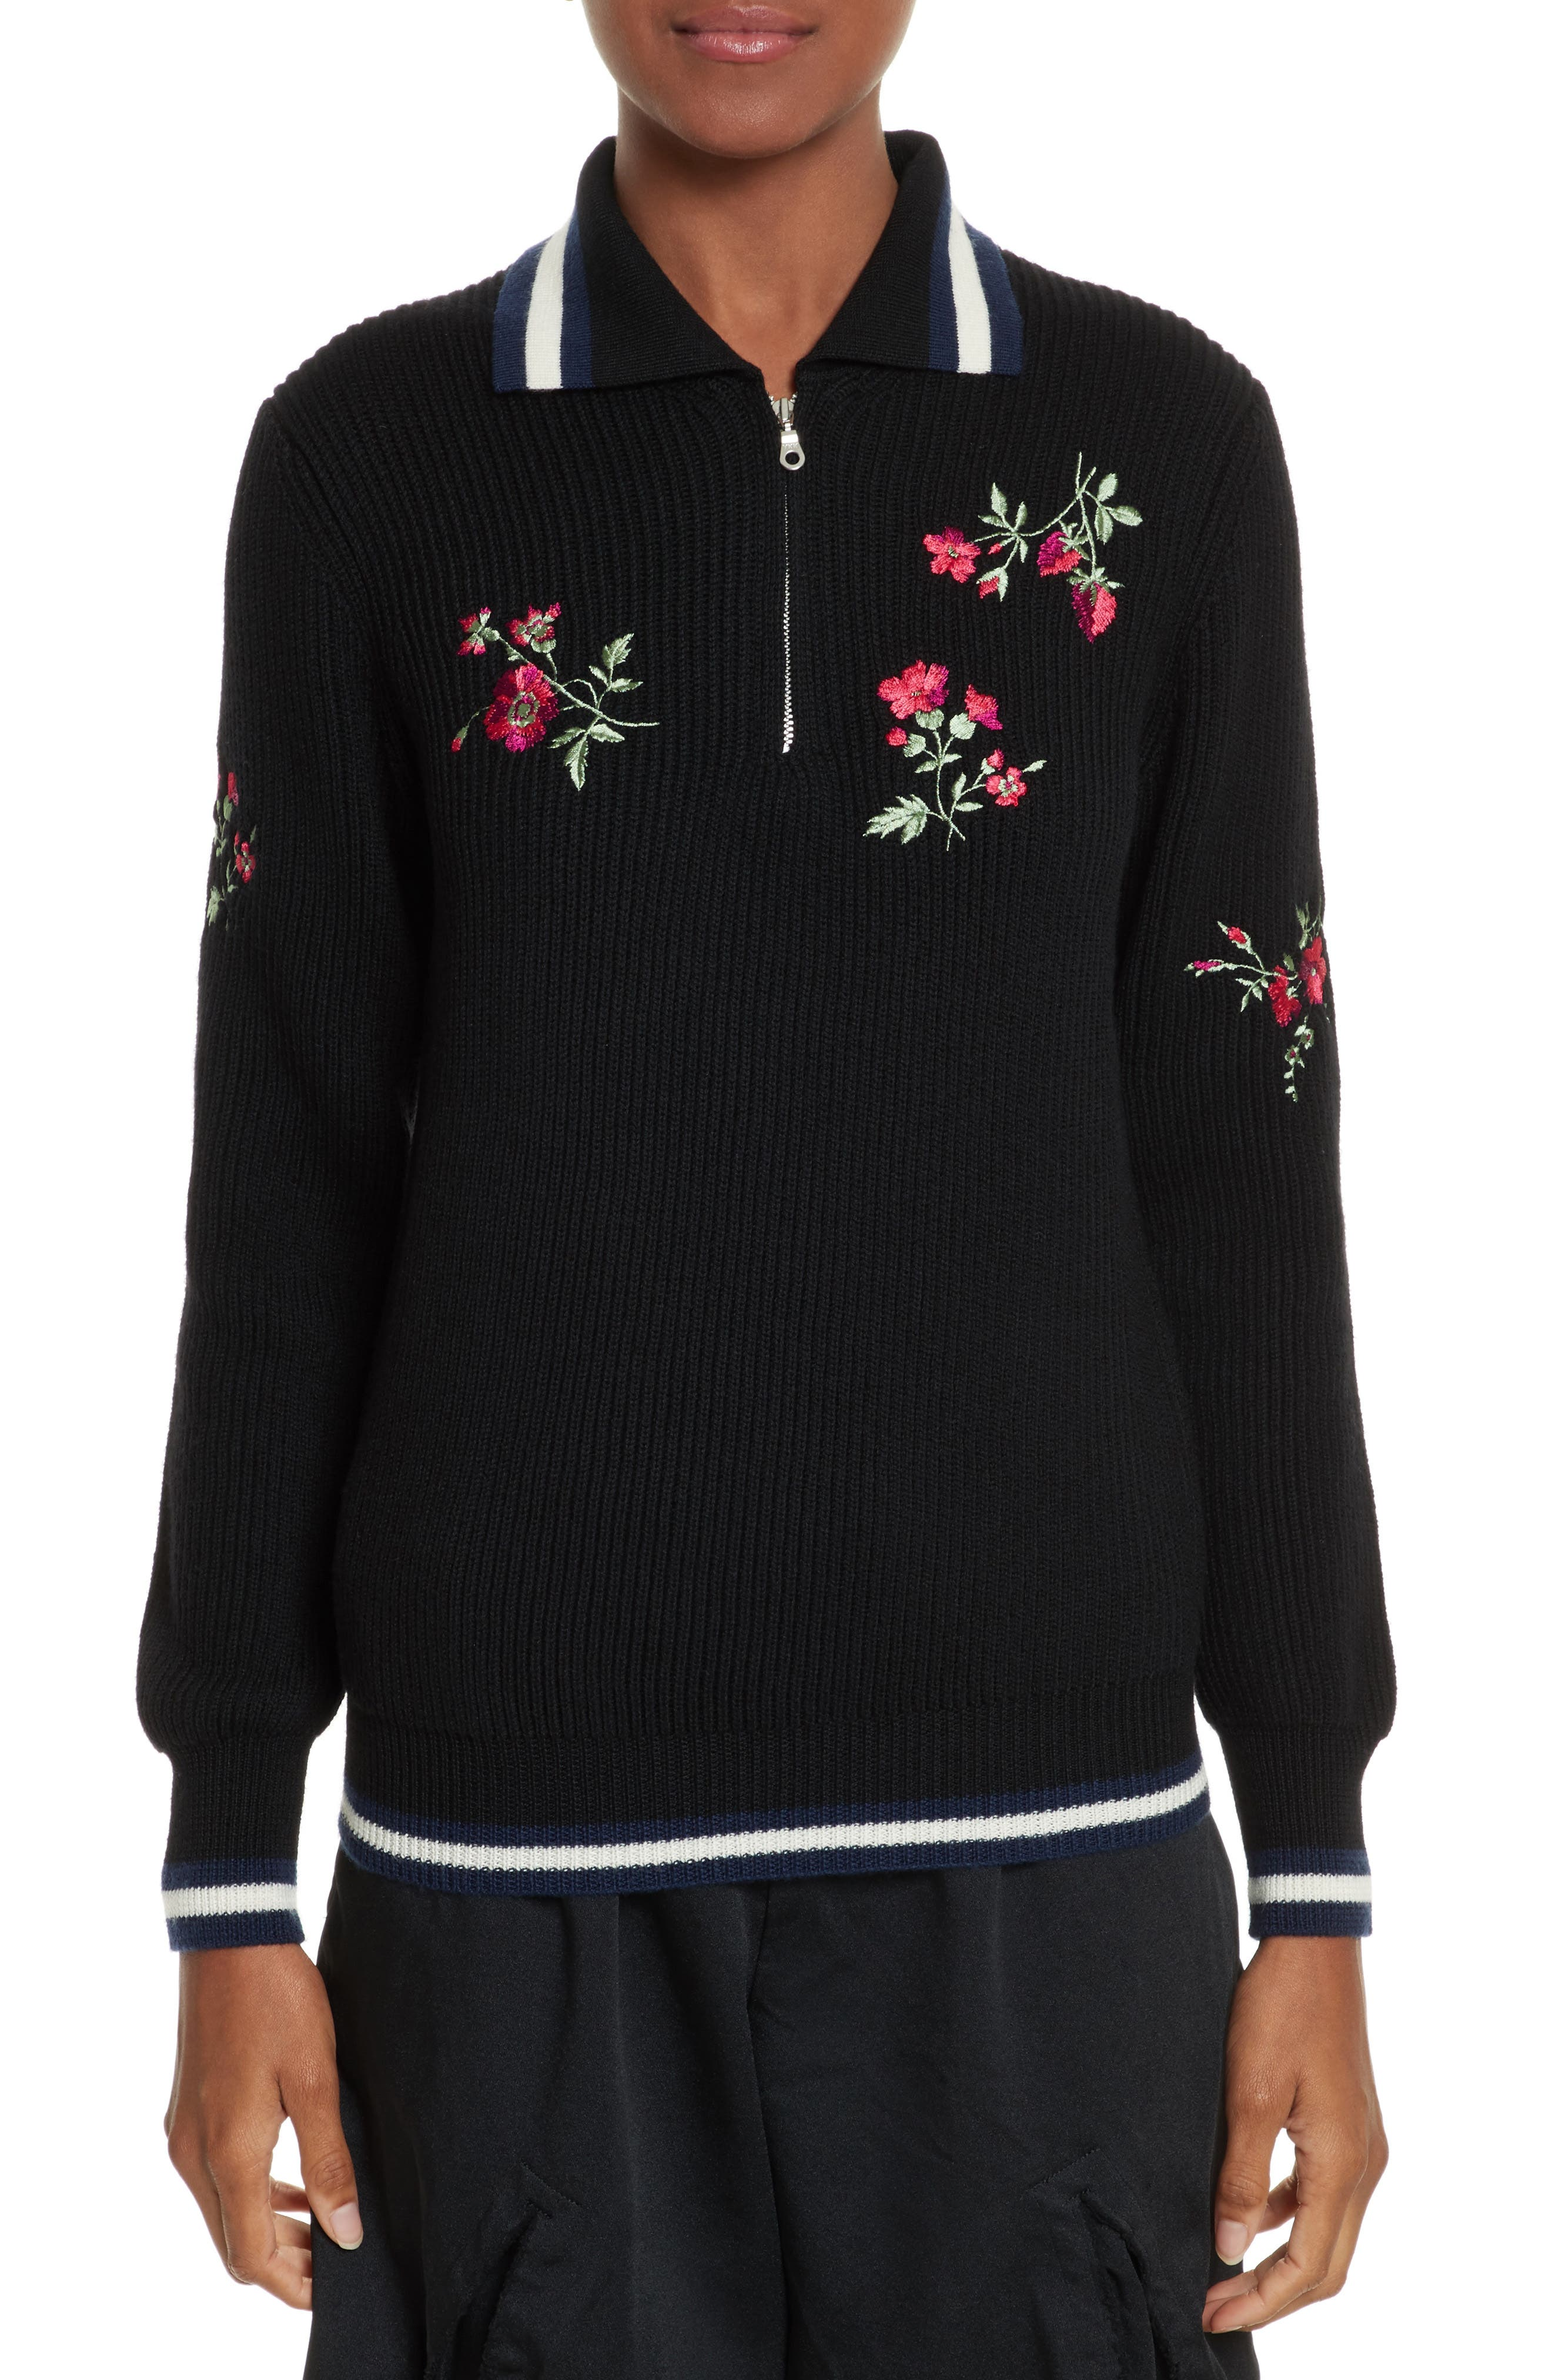 Tricot Comme des Garçons Half Zip Rugby Pullover